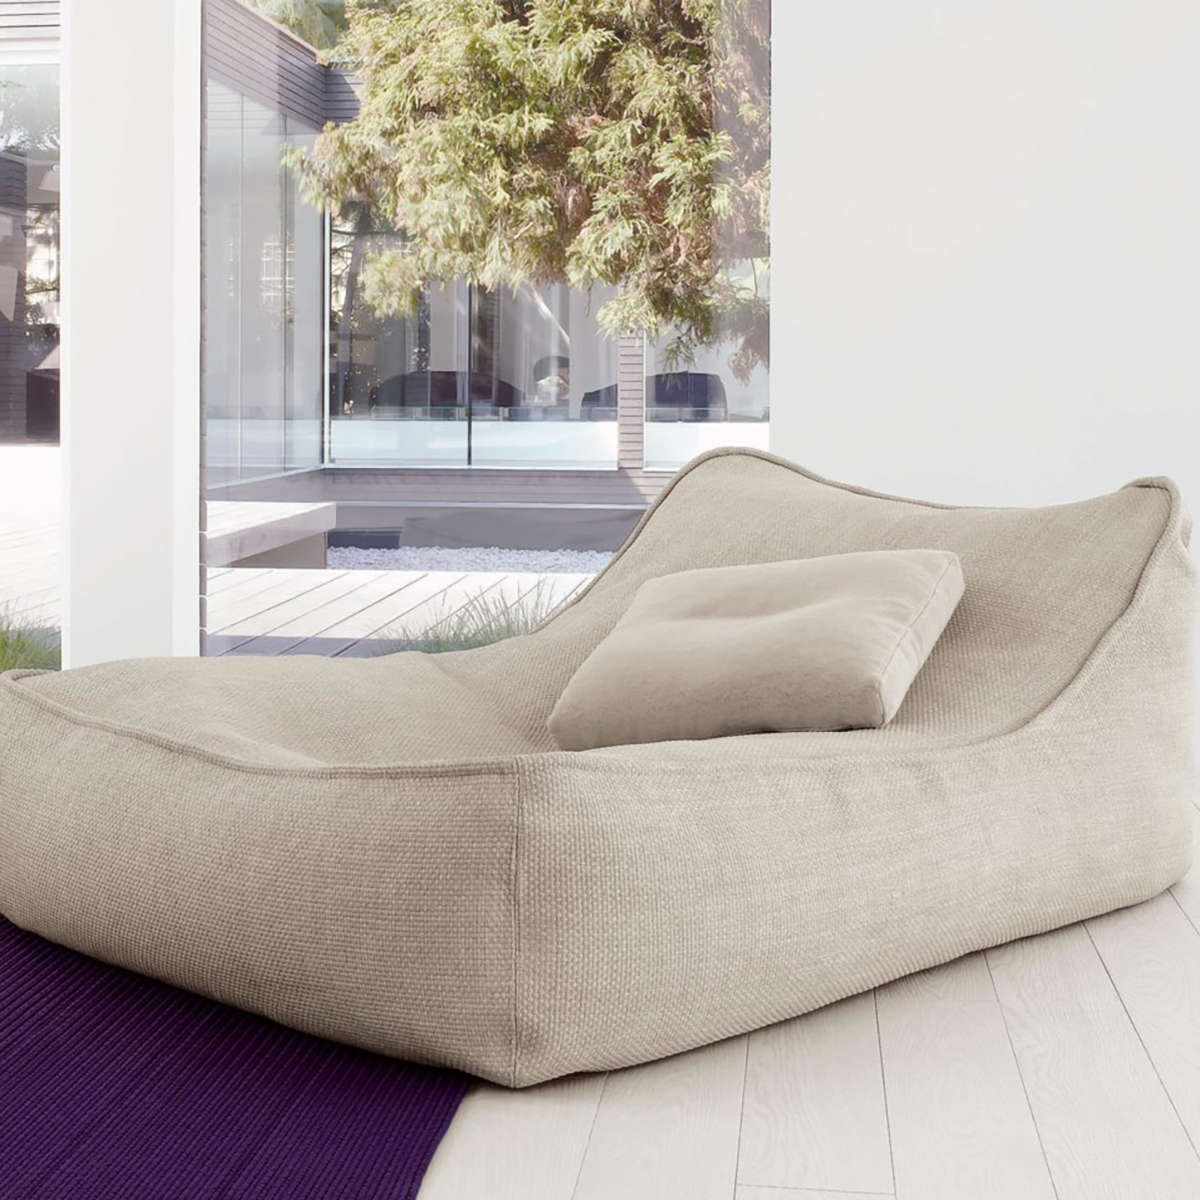 Paola Lenti Float Day Bed